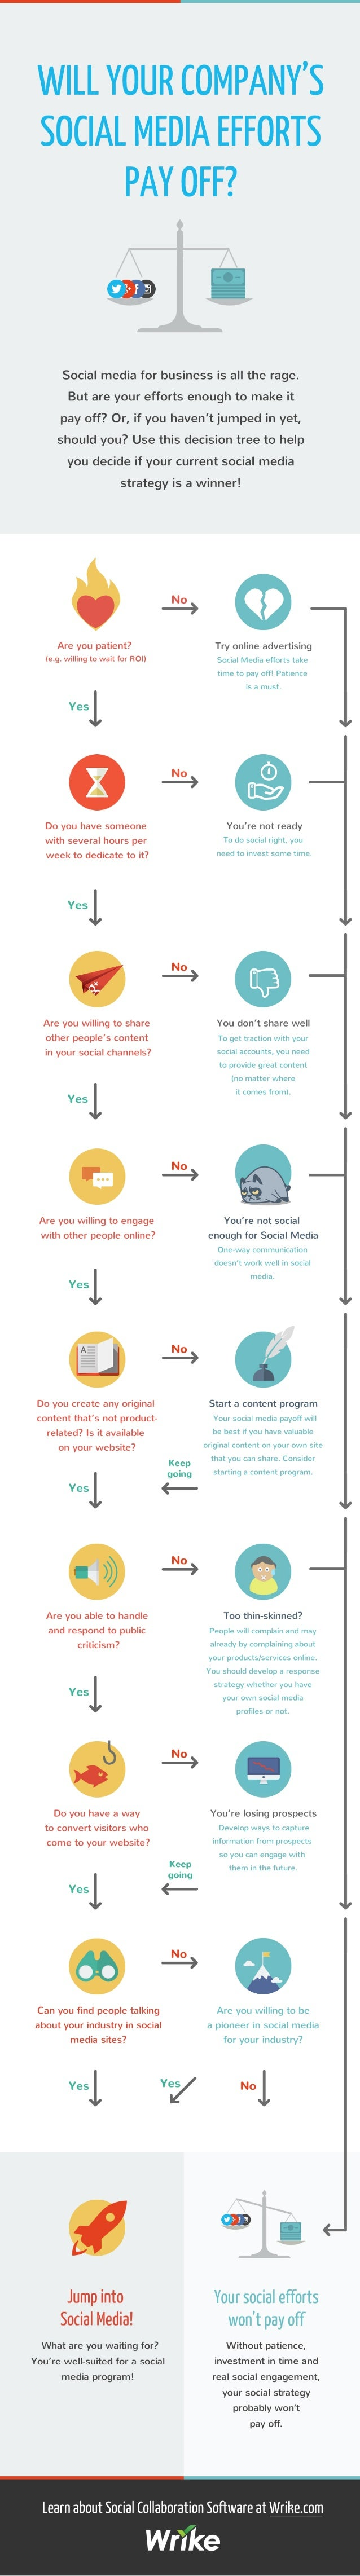 WILL YOUR COMPANY'S SOCIAL MEDIA EFFORTS PAY OFF?   I  Social media for business is all the rage.  But are your efforts en...